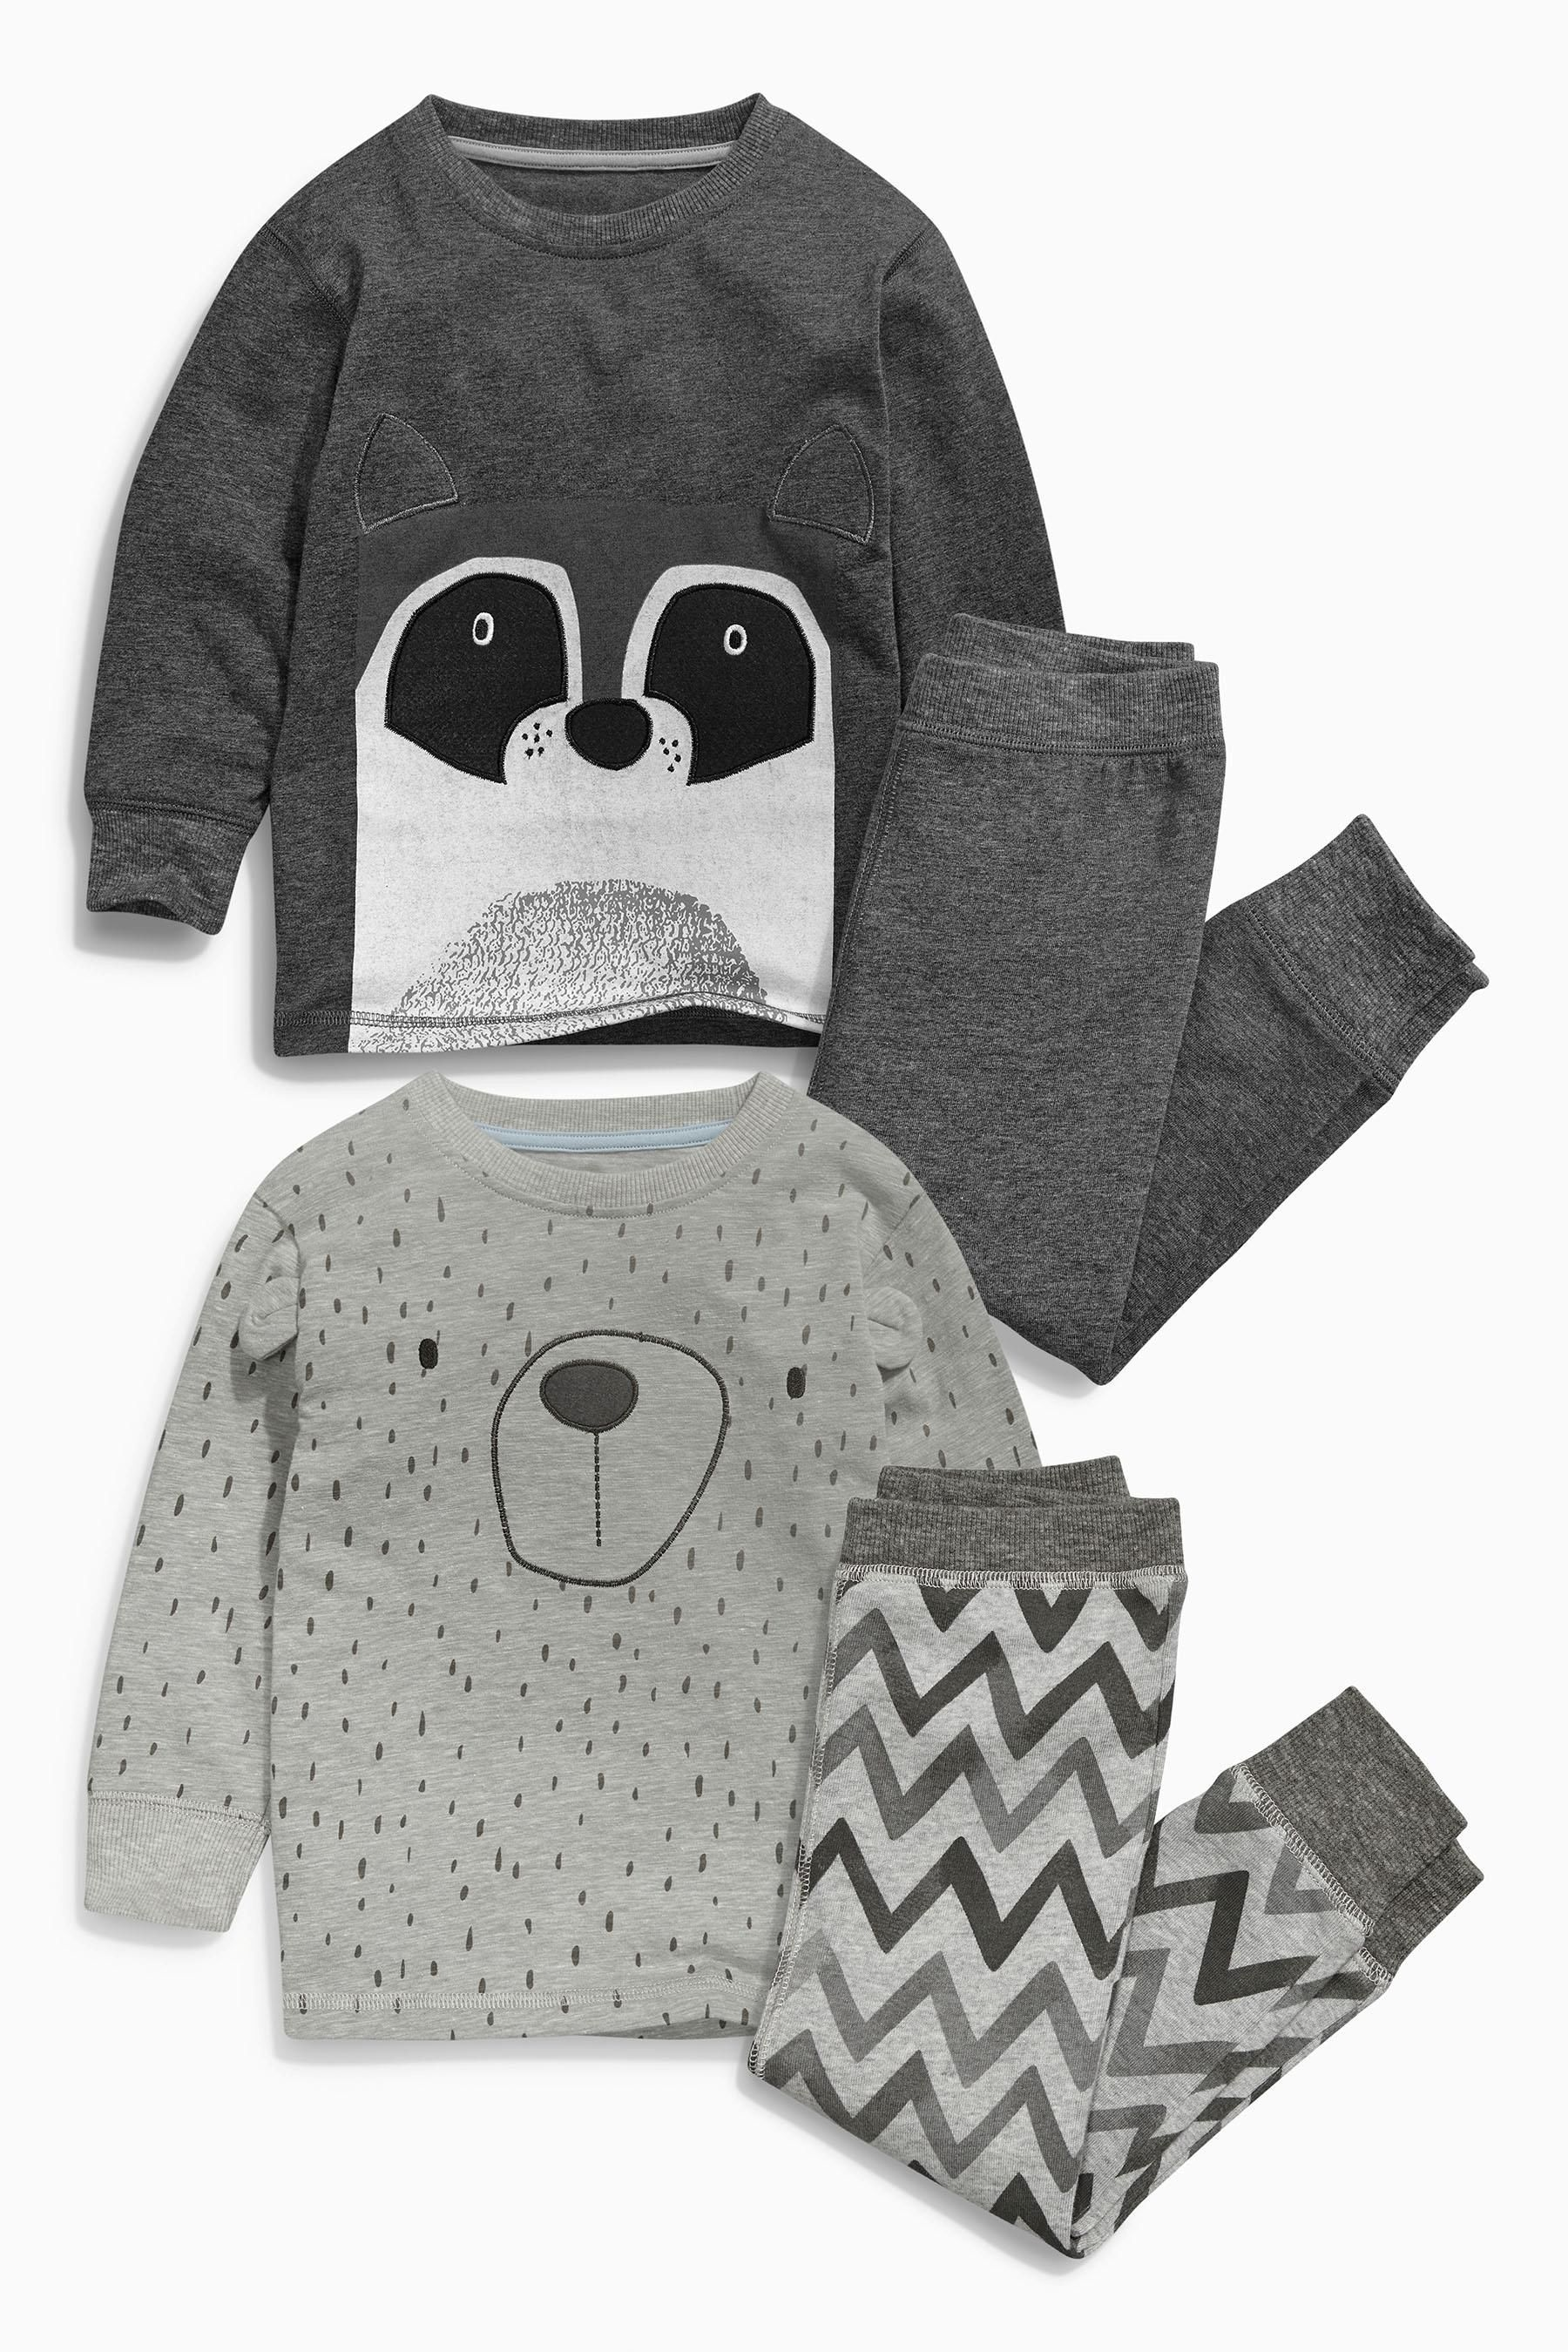 Buy Two Pack Grey Racoon Snuggle Fit Pyjamas 9mths 8yrs from the